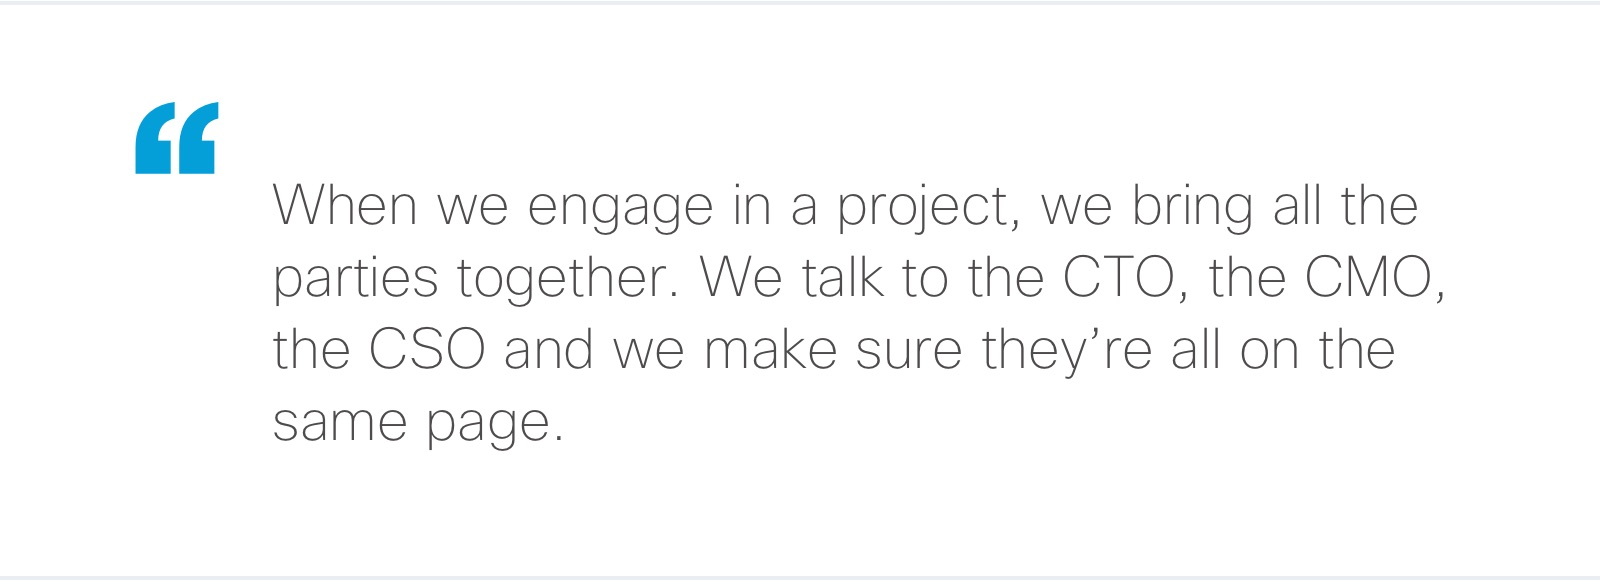 """""""When we engage in a project, we bring all the parties together. We talk to the CTO, the CMO, the CSO and we make sure they're all on the same page."""""""